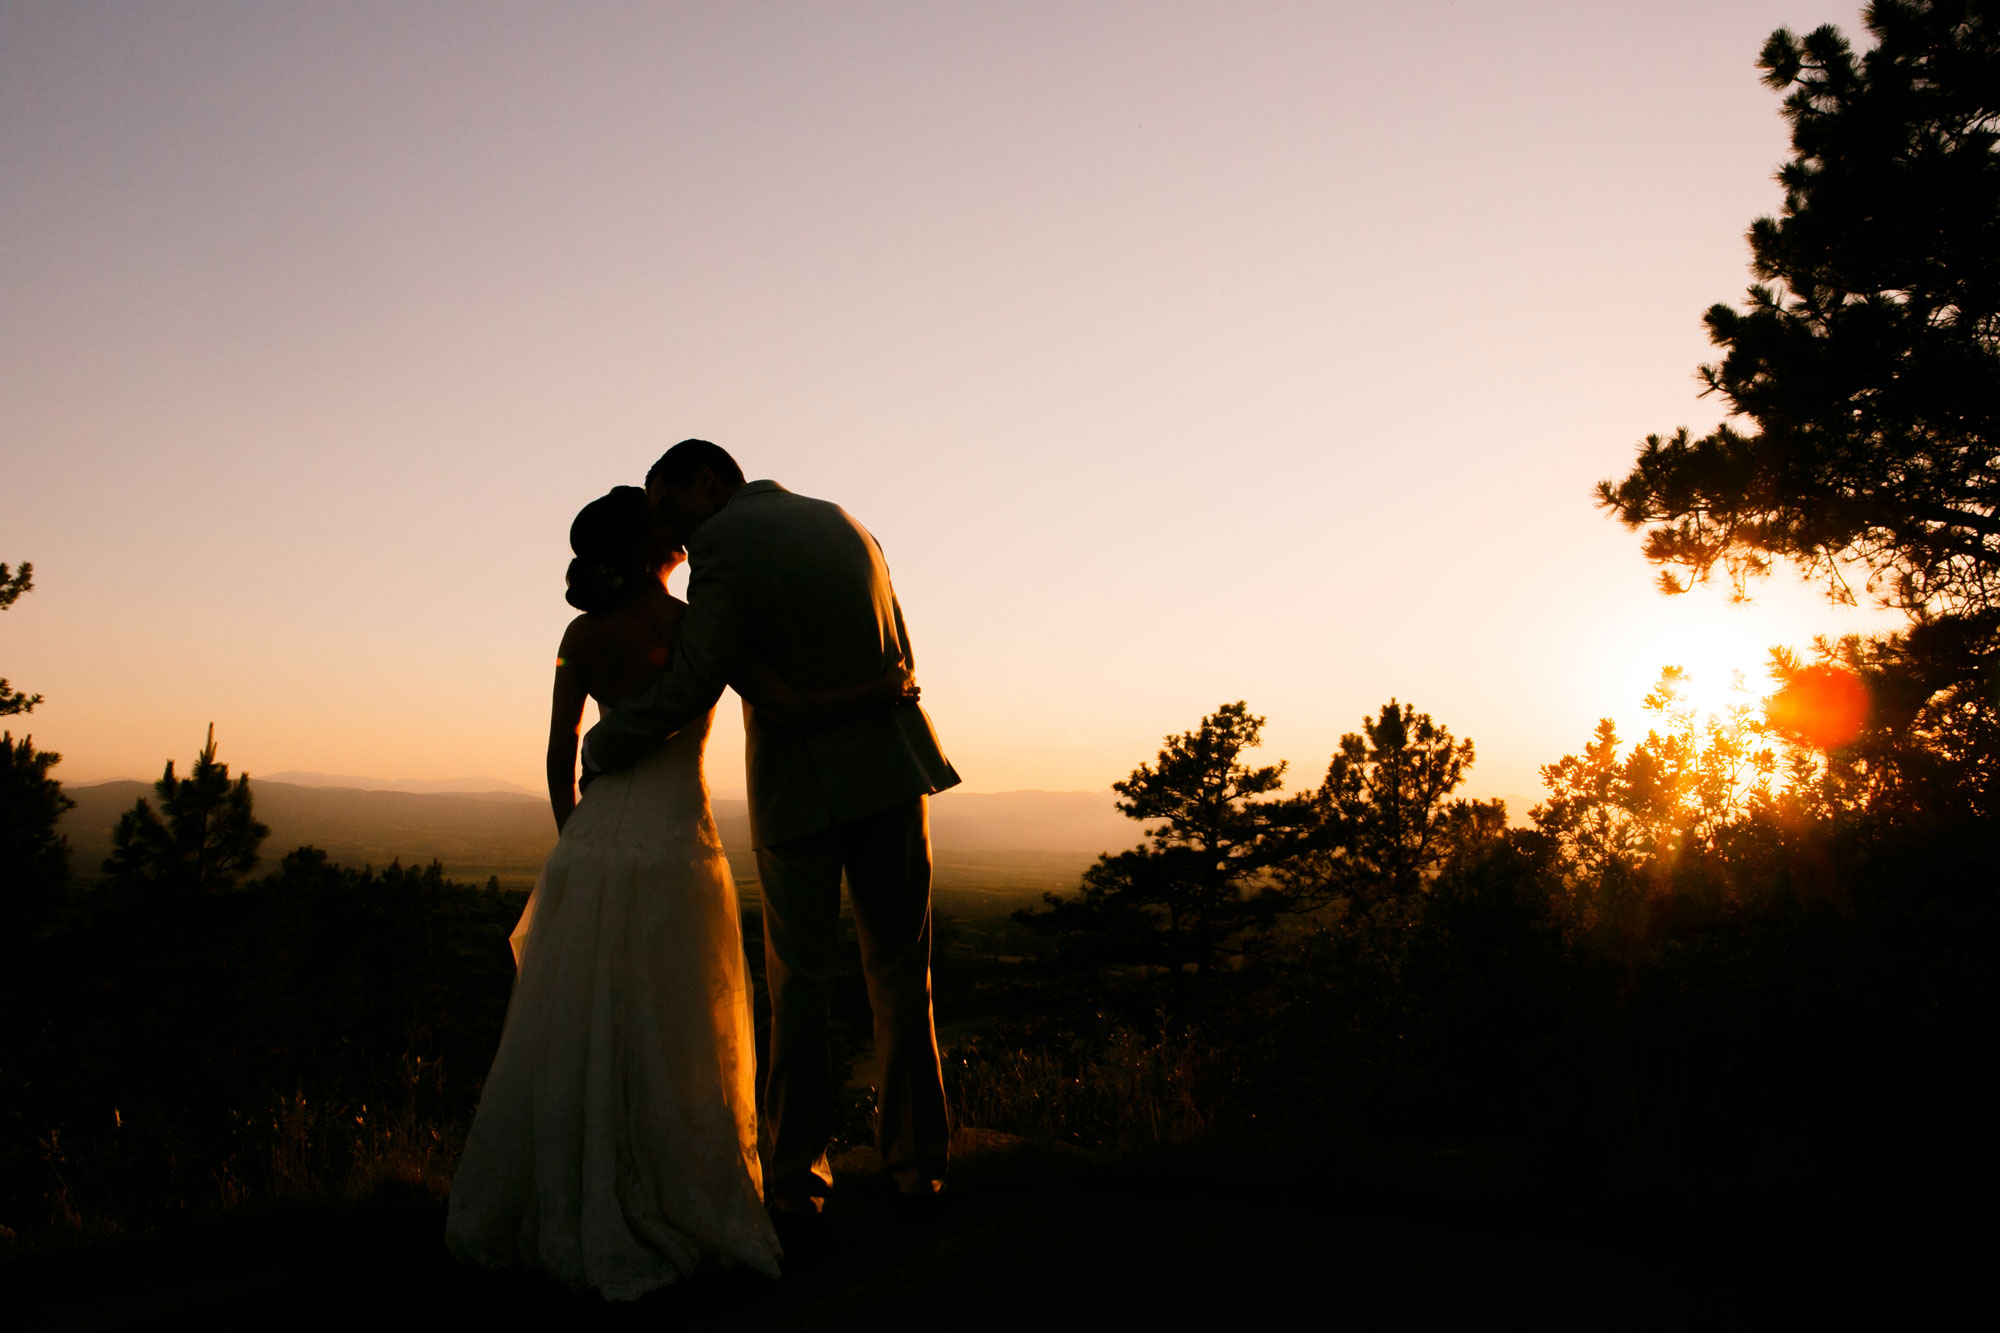 A Classic Wedding in the Foothills of the Colorado Rockies